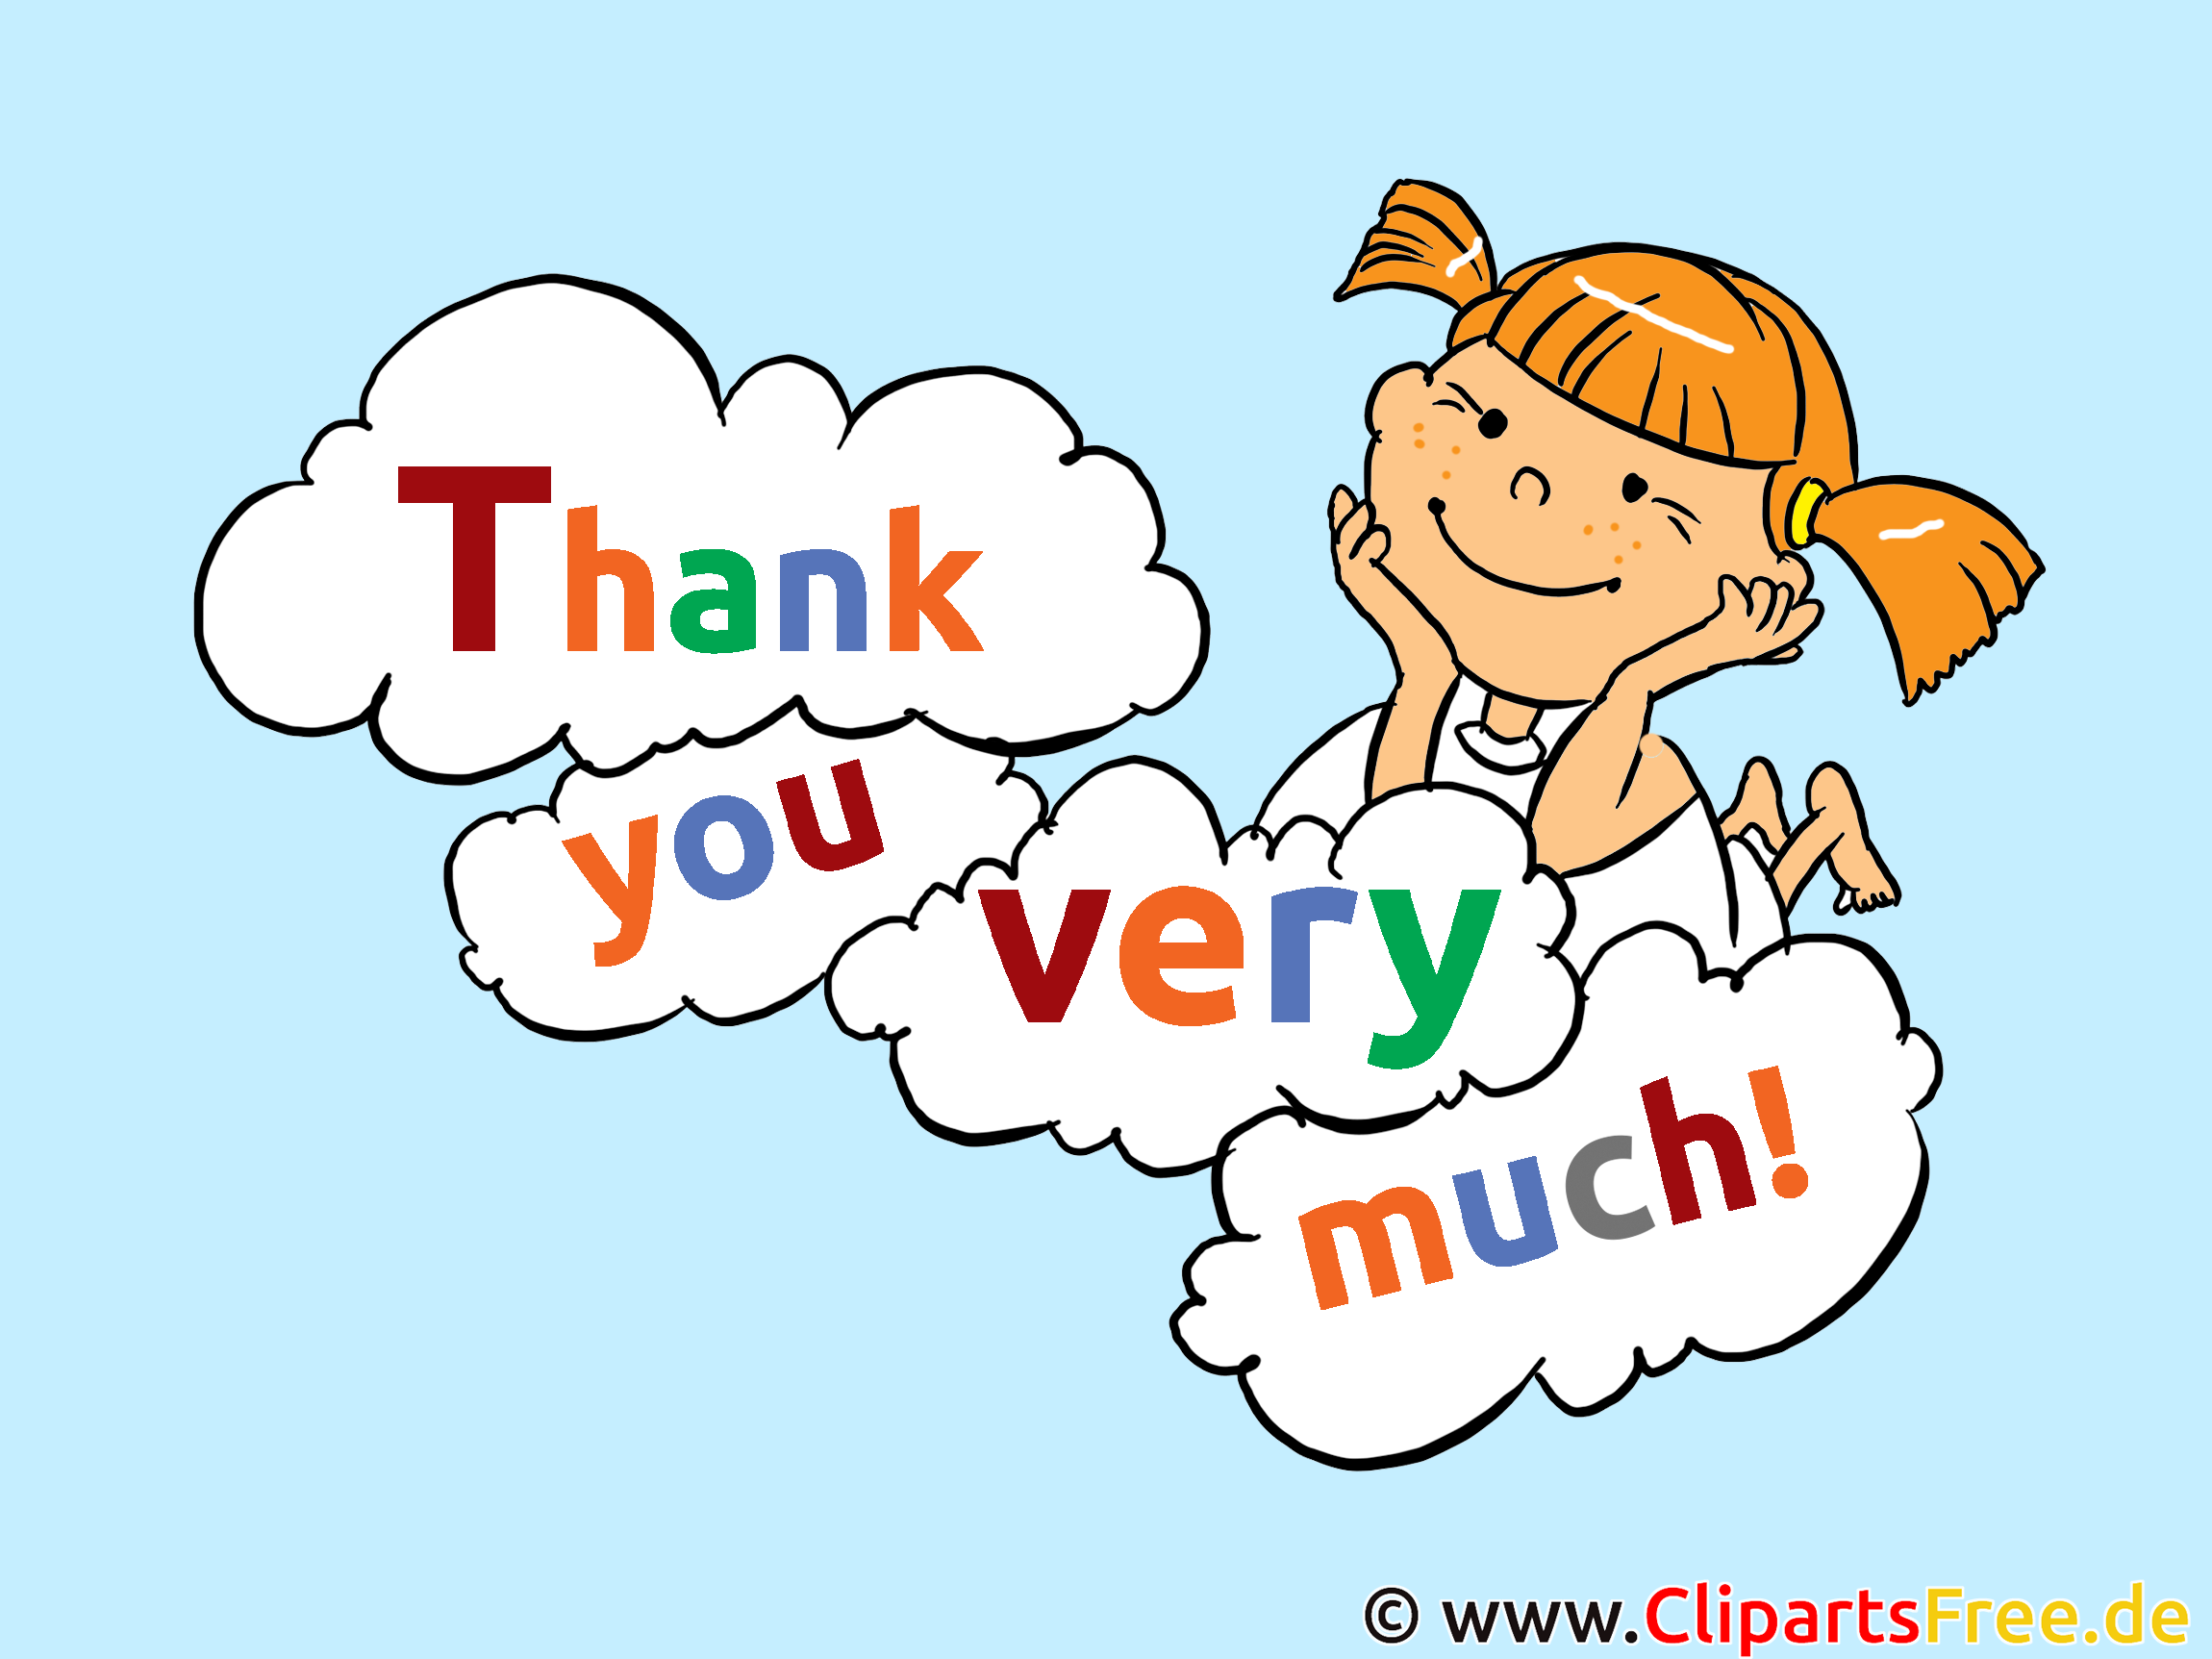 Thank you very much ecard, pic, clip art, cartoon